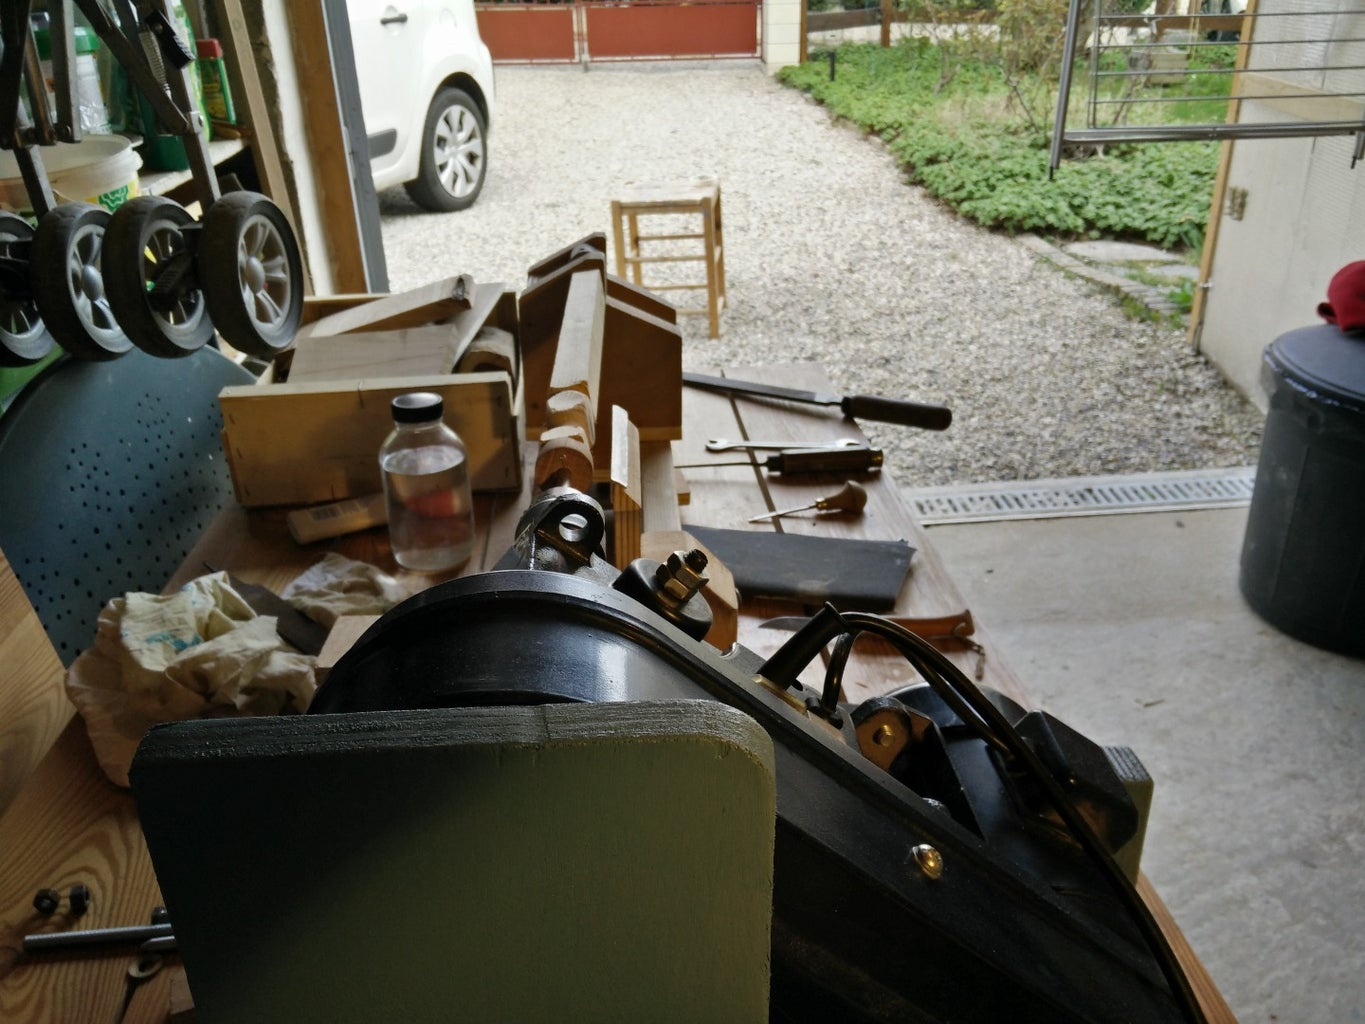 Drill Press to Lathe With a Bit of Scrap Wood